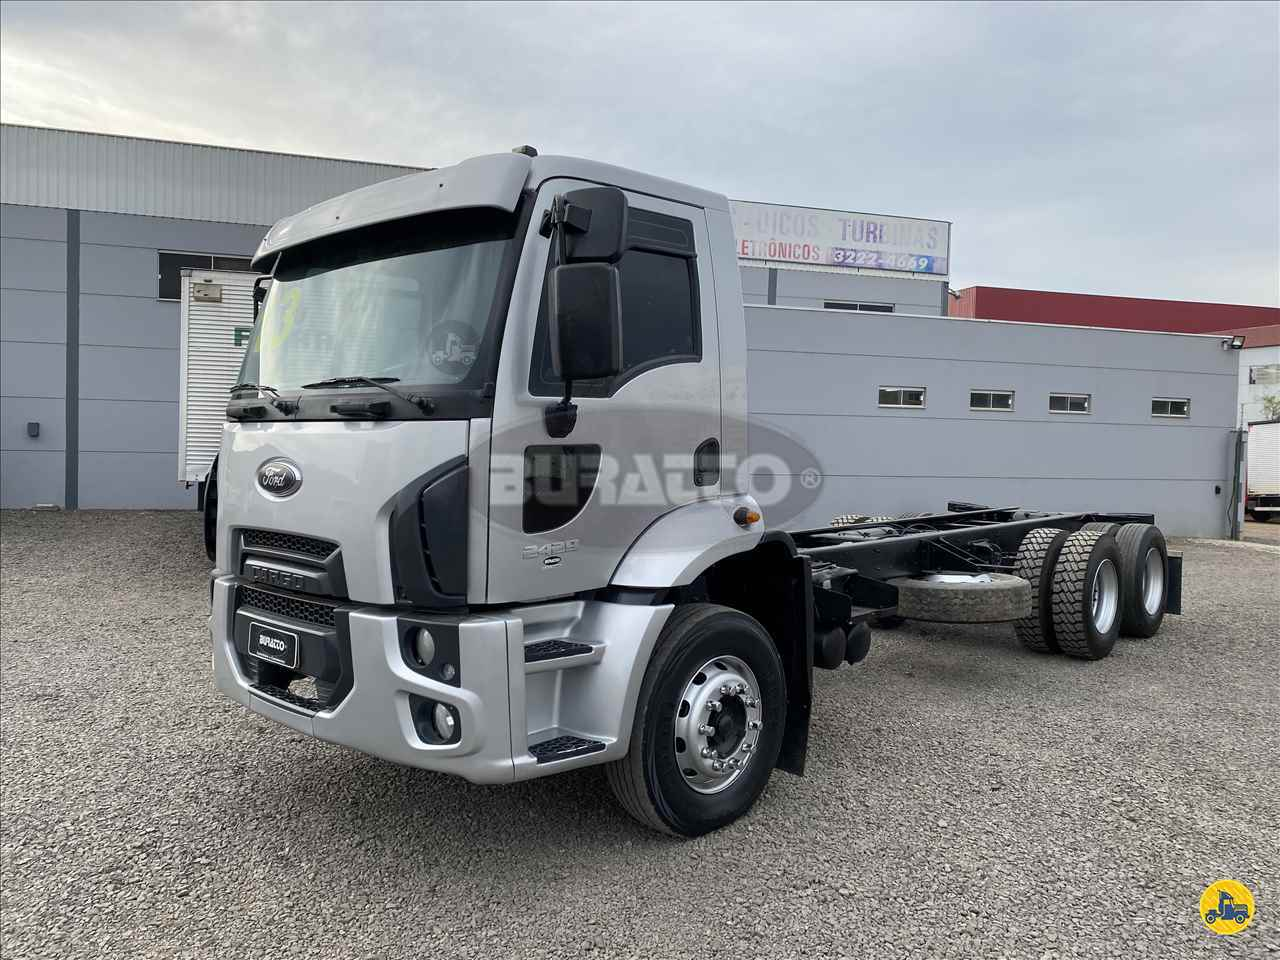 CAMINHAO FORD CARGO 2429 Roll ON OFF Truck 6x2 Buratto Caminhões LAGES SANTA CATARINA SC